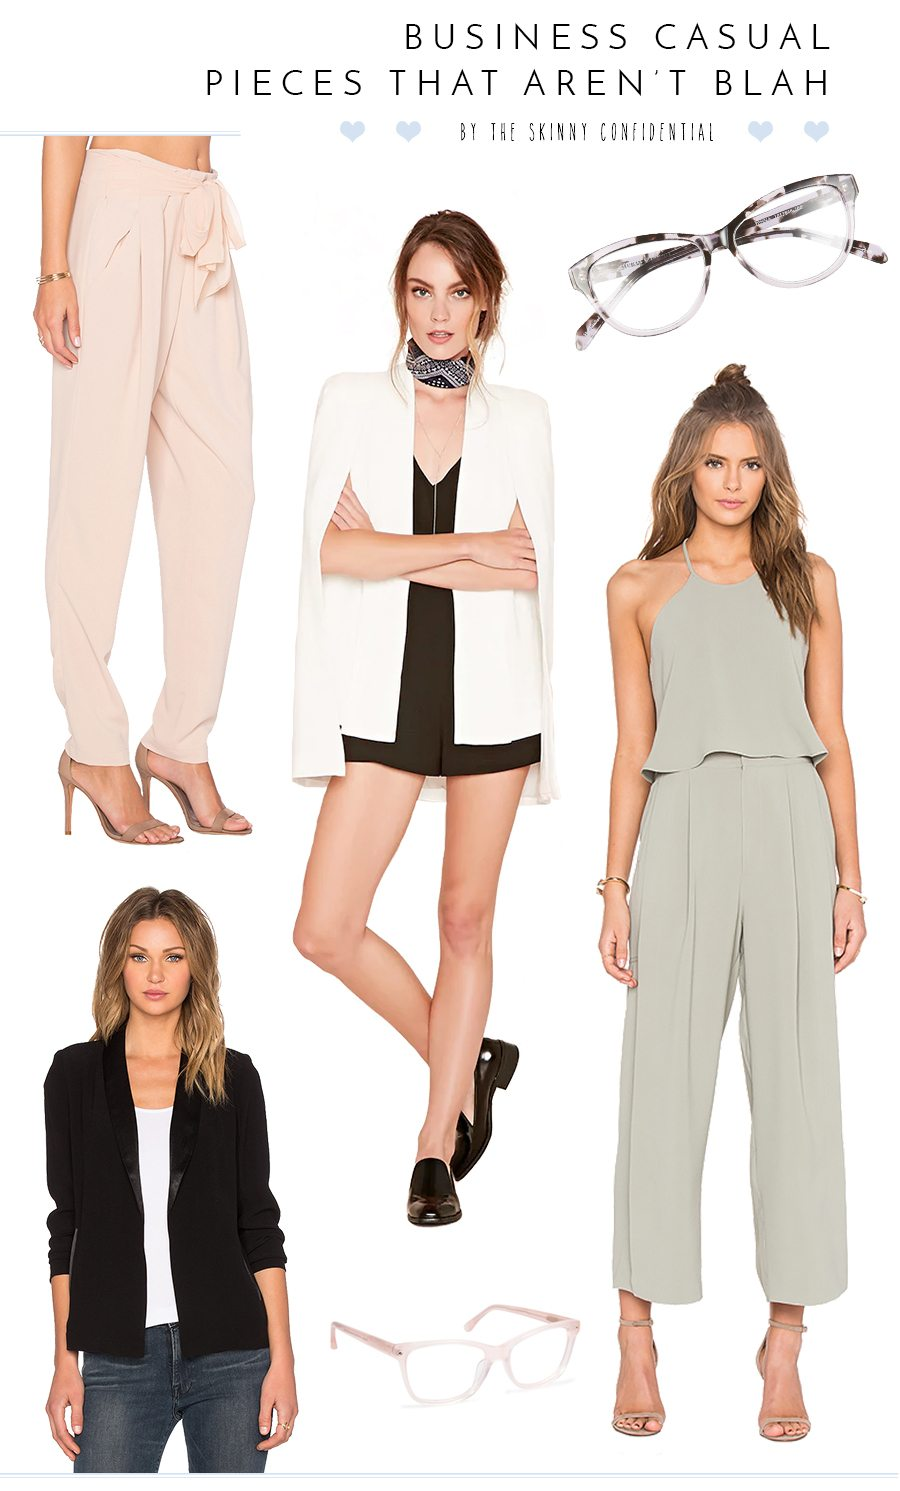 super chic business casual pieces that aren't blah. Use these items to create a chic, cute business casual outfit appropriate for any work environment! by the skinny confidential